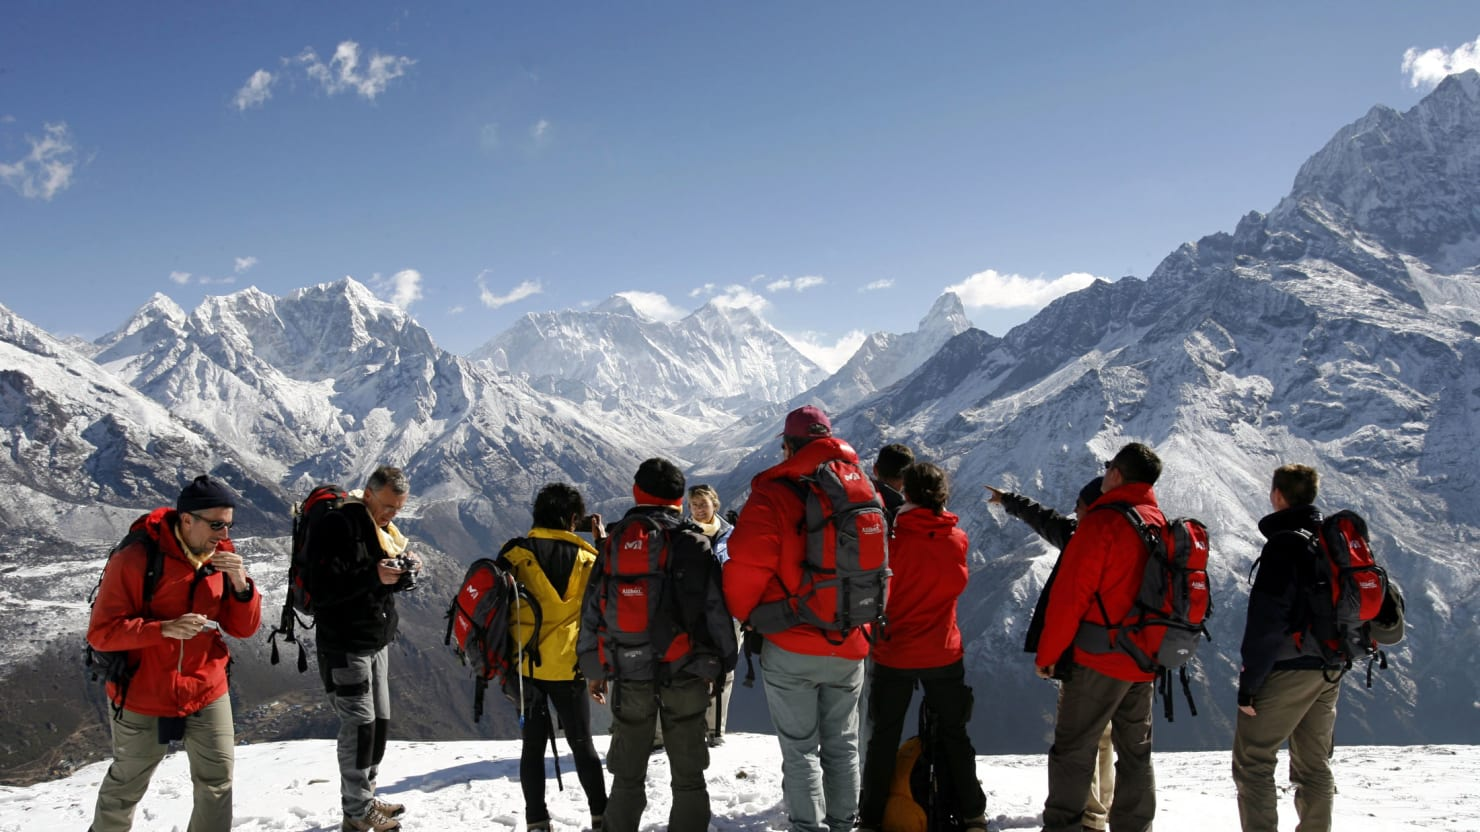 Human Traffic Jams Have Led to 18 Deaths on Mt. Everest